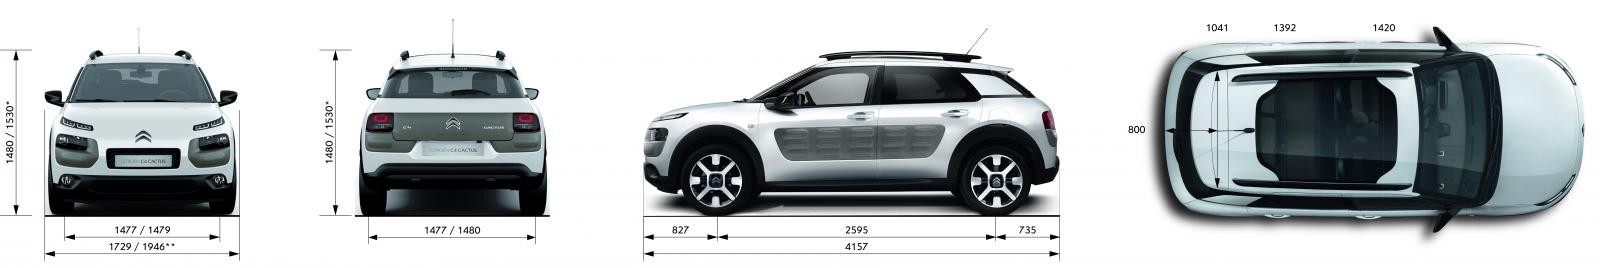 C4 Cactus Shine edition 2014 dimensions